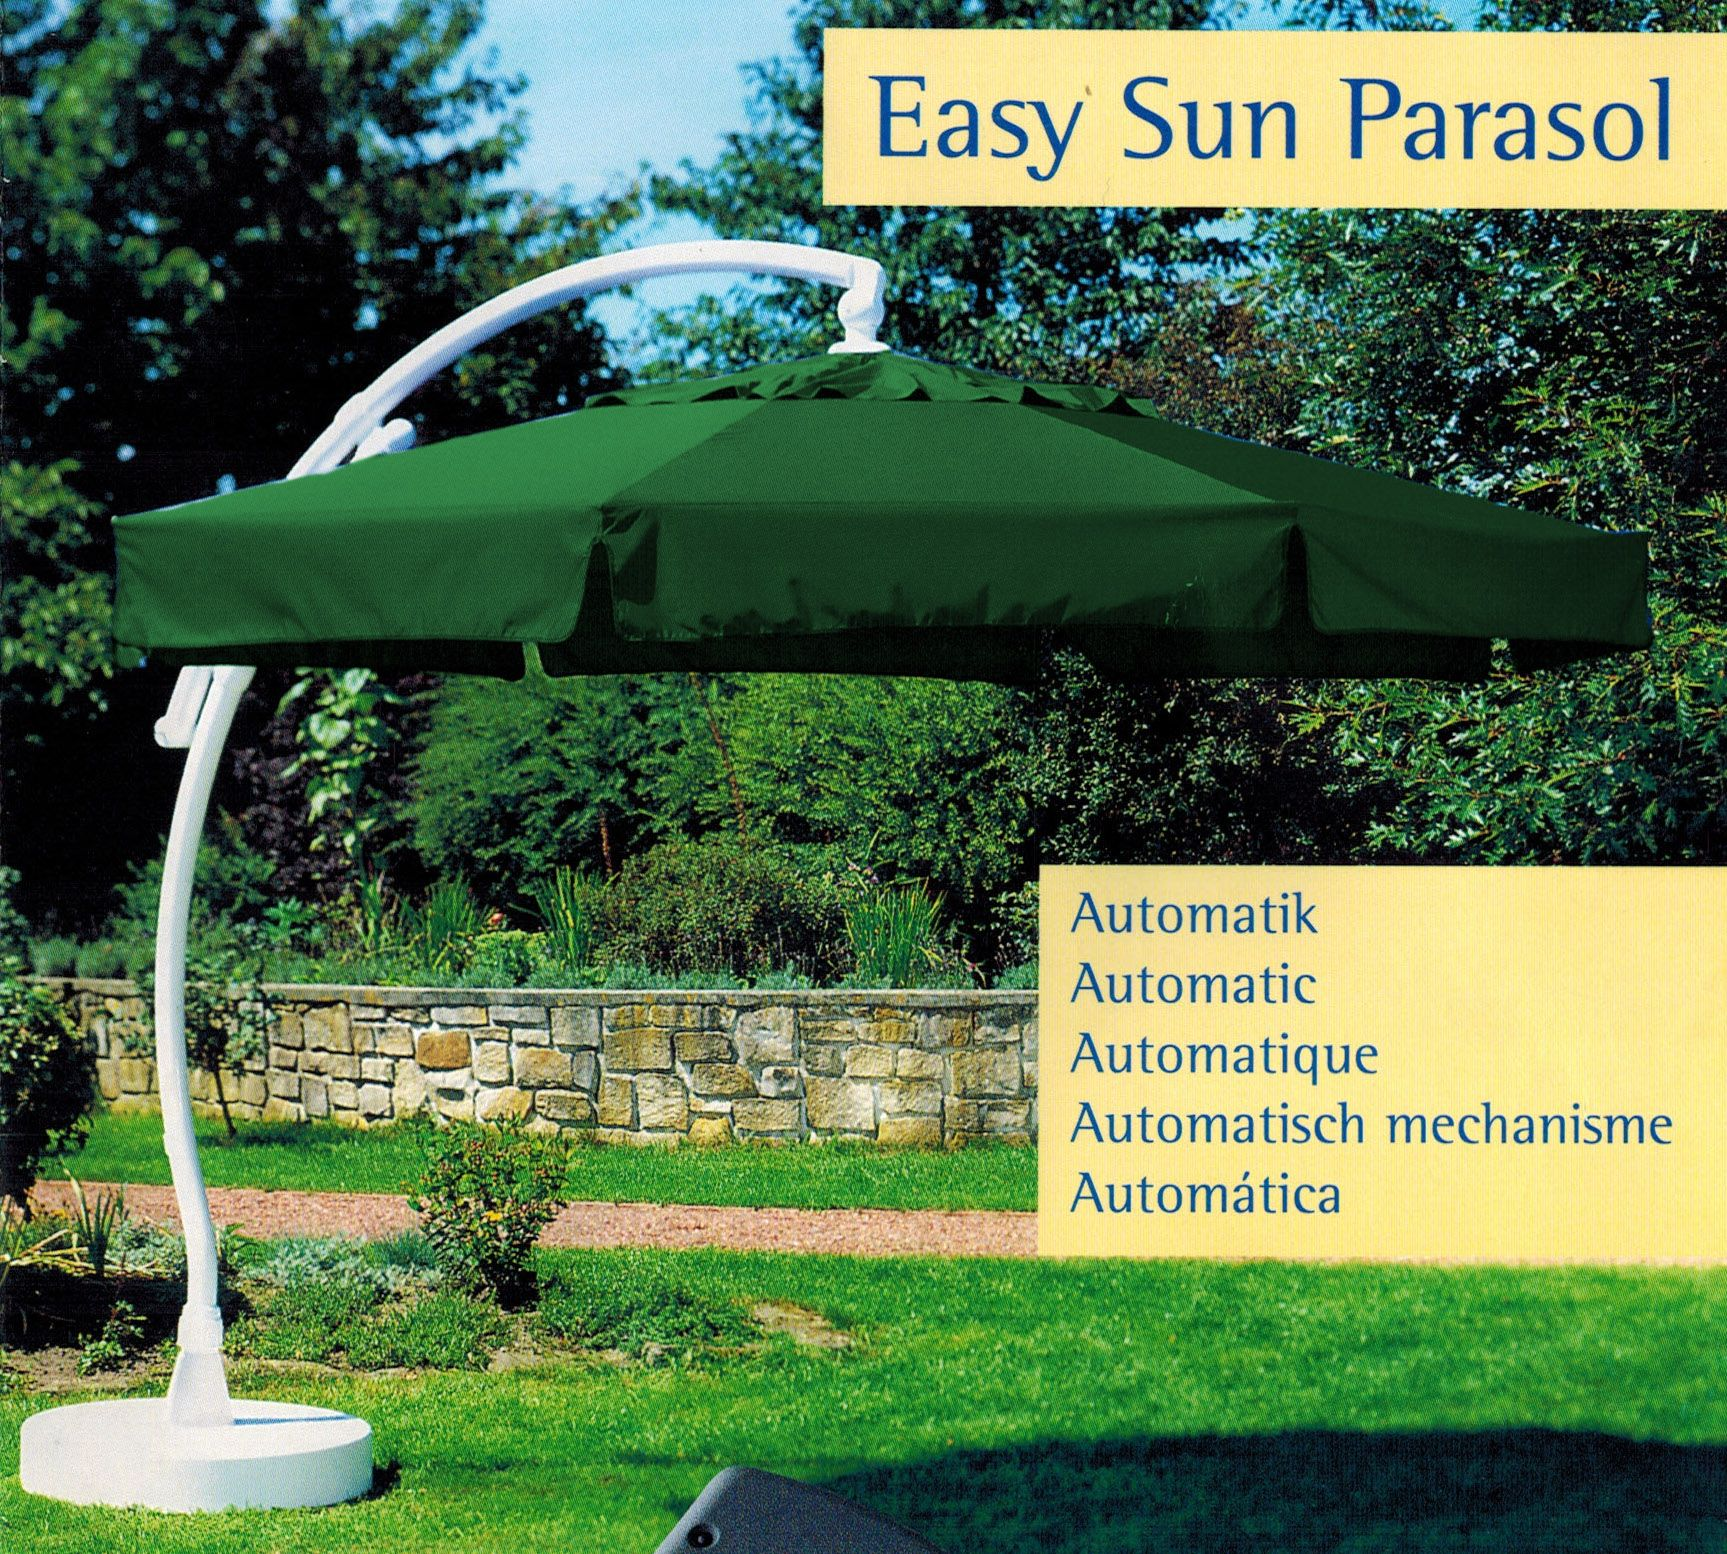 sun garden easy sun parasol ampelschirm 350 8 sonnenschirm. Black Bedroom Furniture Sets. Home Design Ideas